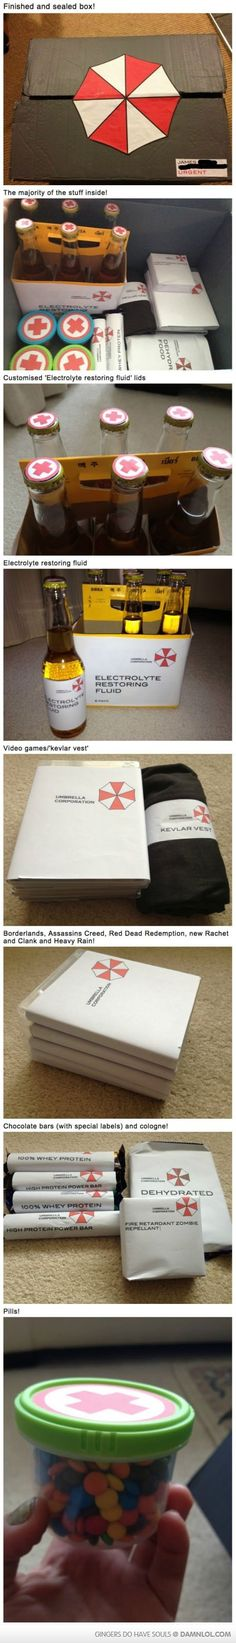 Zombie Survival Kit--the stay at home and play video games and eat candy till I die version. lol!